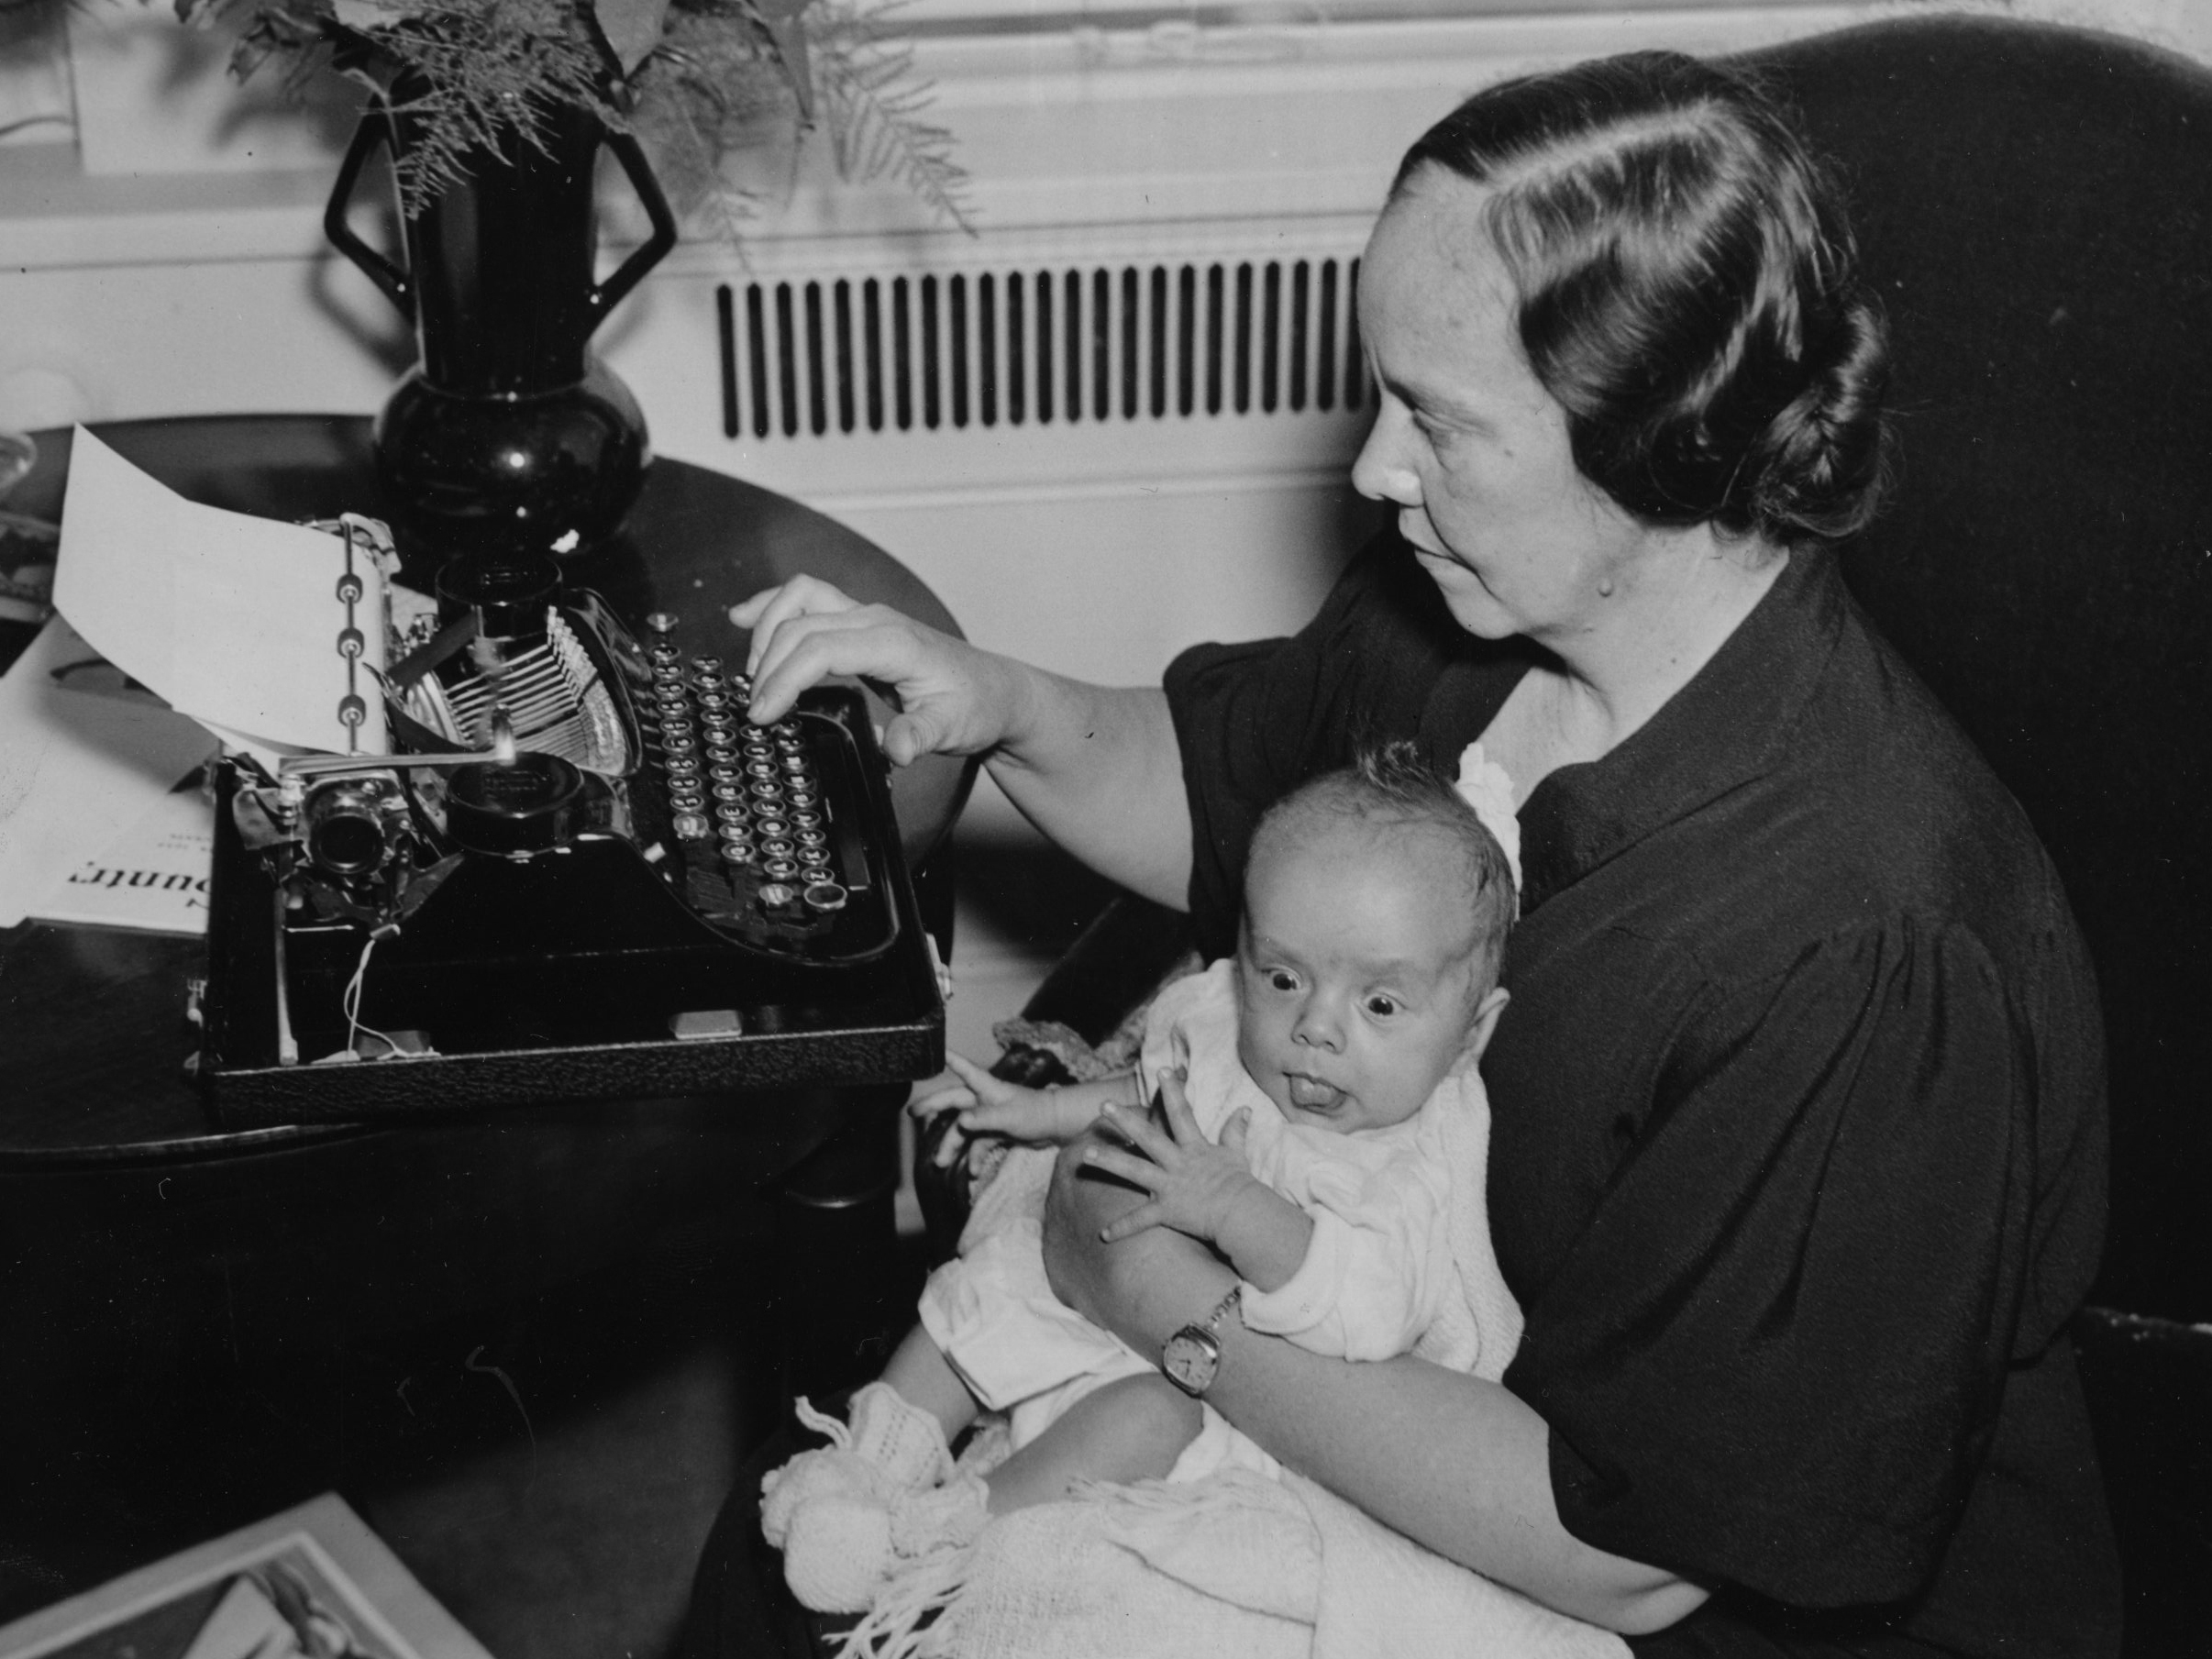 Susan Frawley Eisele holds her 6-week-old son, Albert Jr., at the Waldorf Astoria hotel in New York City in 1936. Eisele, of Blue Earth, Minn., won an essay contest with Country Home magazine and was named best American rural correspondent of 1936.All the major newspapers published stories about Eisele's visit to New York City, including a photo of her receiving a giant pencil from Mayor Fiorello LaGuardia.Eisele is shown here with her son (and the author's father) Albert Jr. in 1936. Eisele found out she had won the County Home contest the same day she gave birth to Albert, her sixth child.Susan Frawley Eisele holds her 6-week-old son, Albert Jr., at the Waldorf Astoria hotel in New York City in 1936. Eisele, of Blue Earth, Minn., won an essay contest with Country Home magazine and was named best American rural correspondent of 1936.All the major newspapers published stories about Eisele's visit to New York City, including a photo of her receiving a giant pencil from Mayor Fiorello LaGuardia.Eisele is shown here with her son (and the author's father) Albert Jr. in 1936. Eisele found out she had won the County Home contest the same day she gave birth to Albert, her sixth child.Susan Frawley Eisele holds her 6-week-old son, Albert Jr., at the Waldorf Astoria hotel in New York City in 1936. Eisele, of Blue Earth, Minn., won an essay contest with Country Home magazine and was named best American rural correspondent of 1936.All the major newspapers published stories about Eisele's visit to New York City, including a photo of her receiving a giant pencil from Mayor Fiorello LaGuardia.Eisele is shown here with her son (and the author's father) Albert Jr. in 1936. Eisele found out she had won the County Home contest the same day she gave birth to Albert, her sixth child.